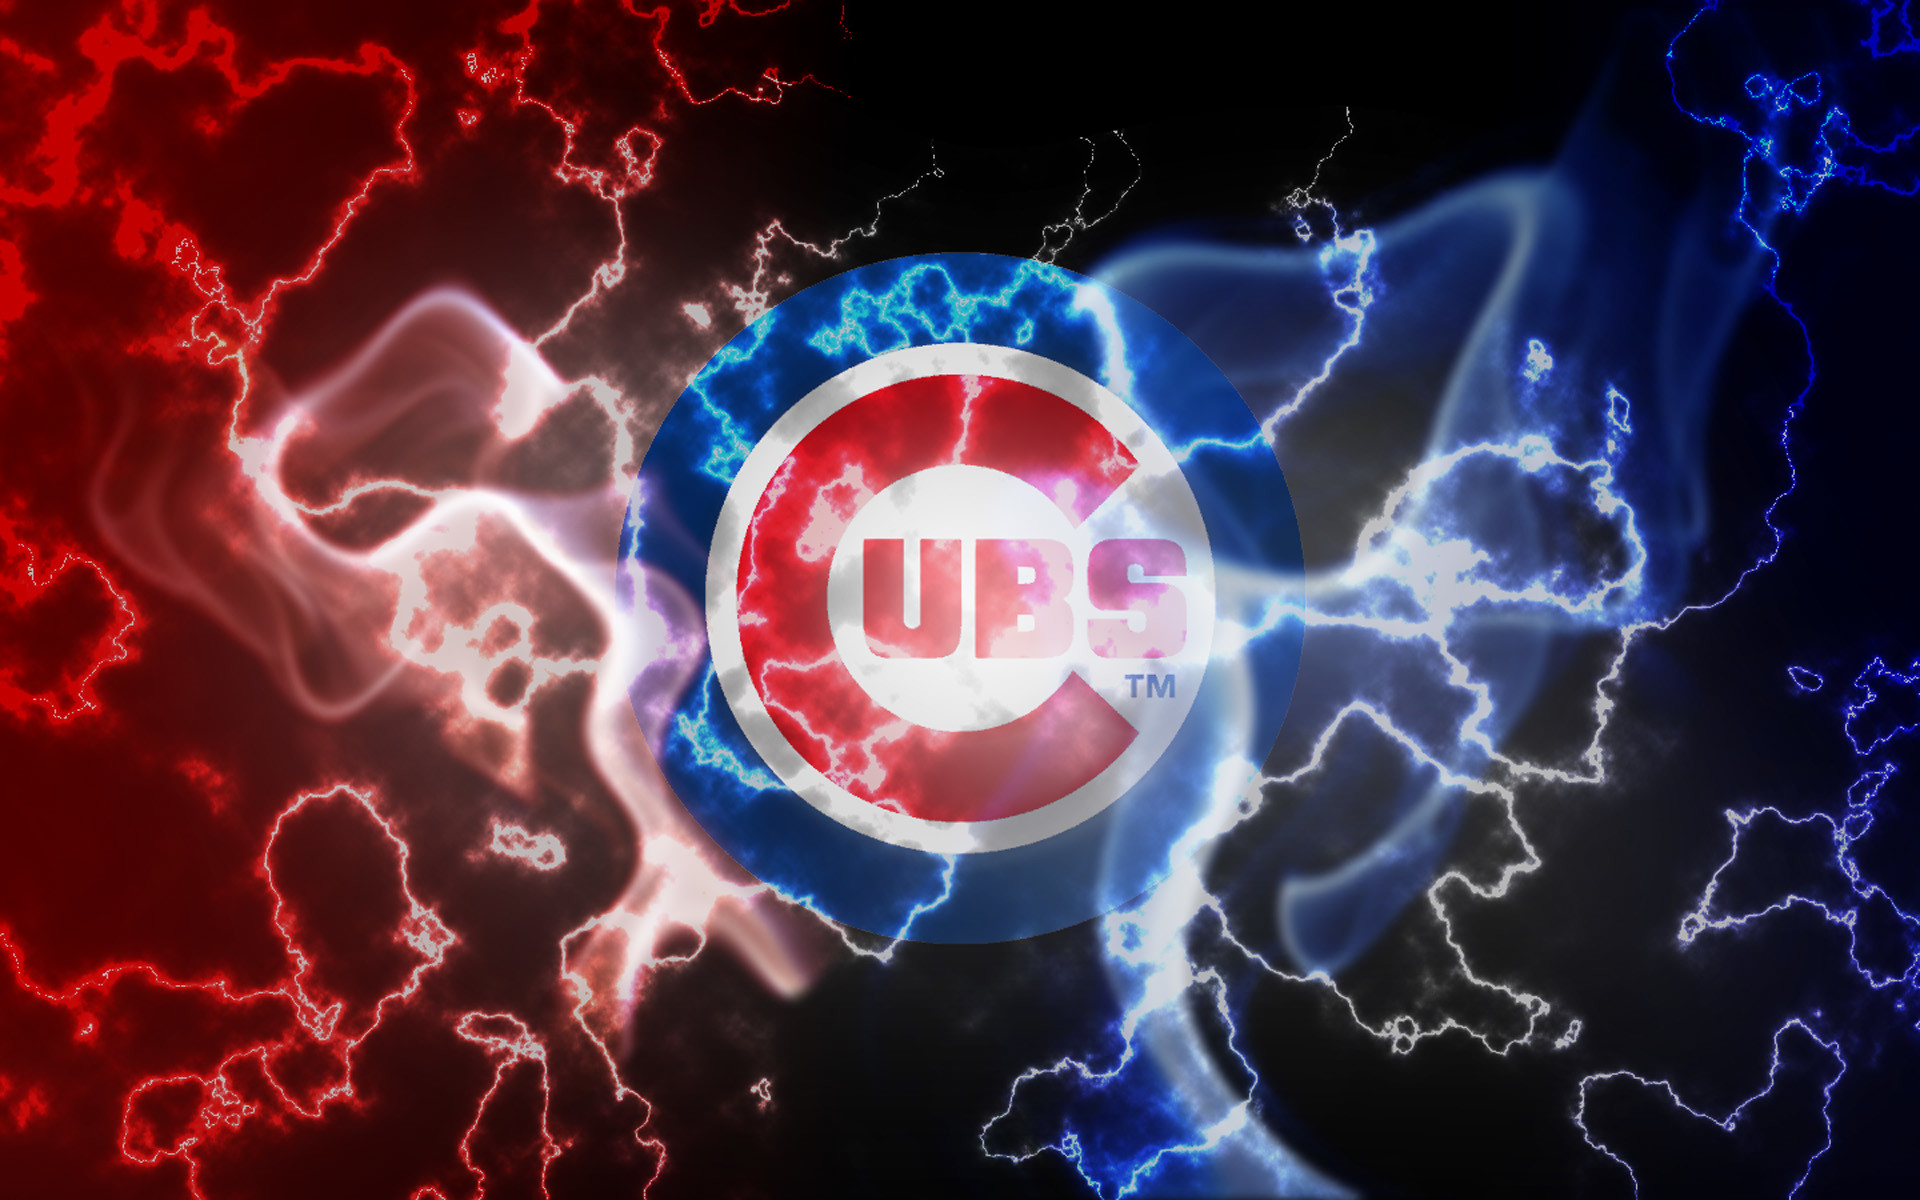 1920x1200 Chicago Cubs HD Wallpaper | HD Wallpapers, HD Backgrounds